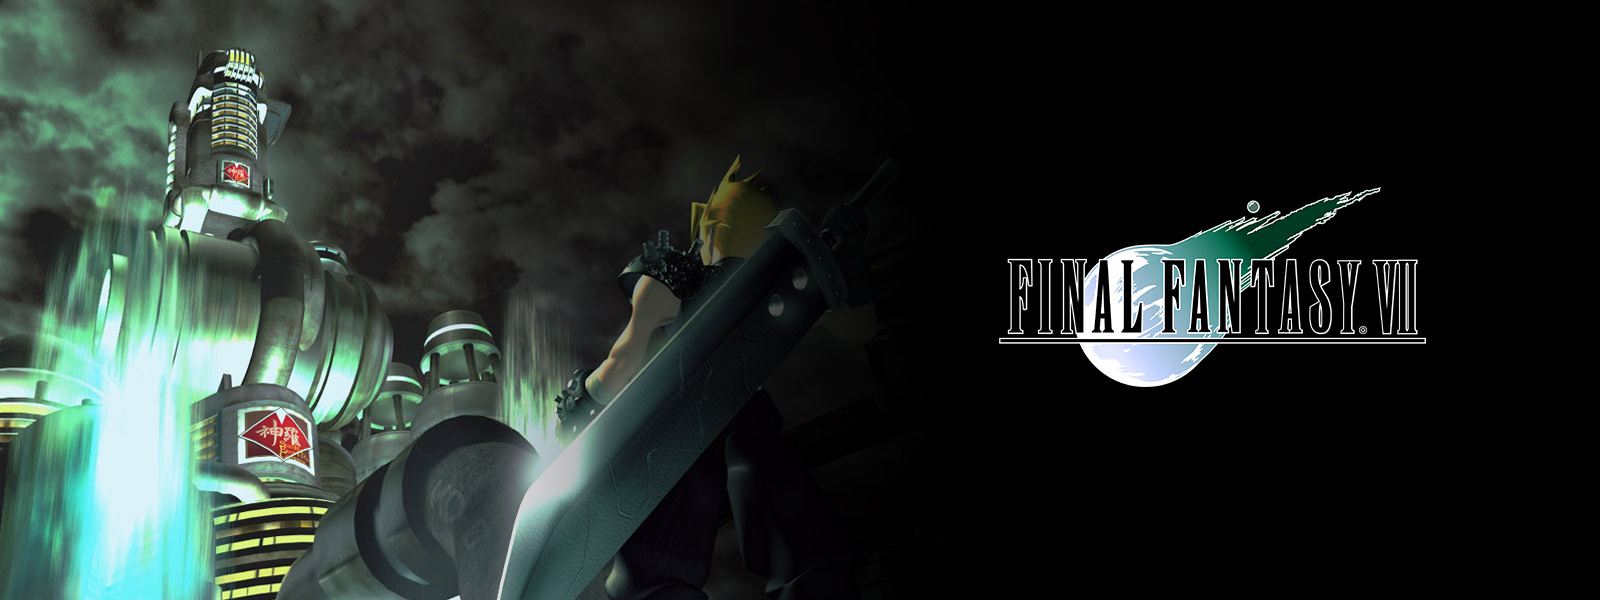 FINAL FANTASY VII protagonist Cloud Strife stands with a giant sword on his back